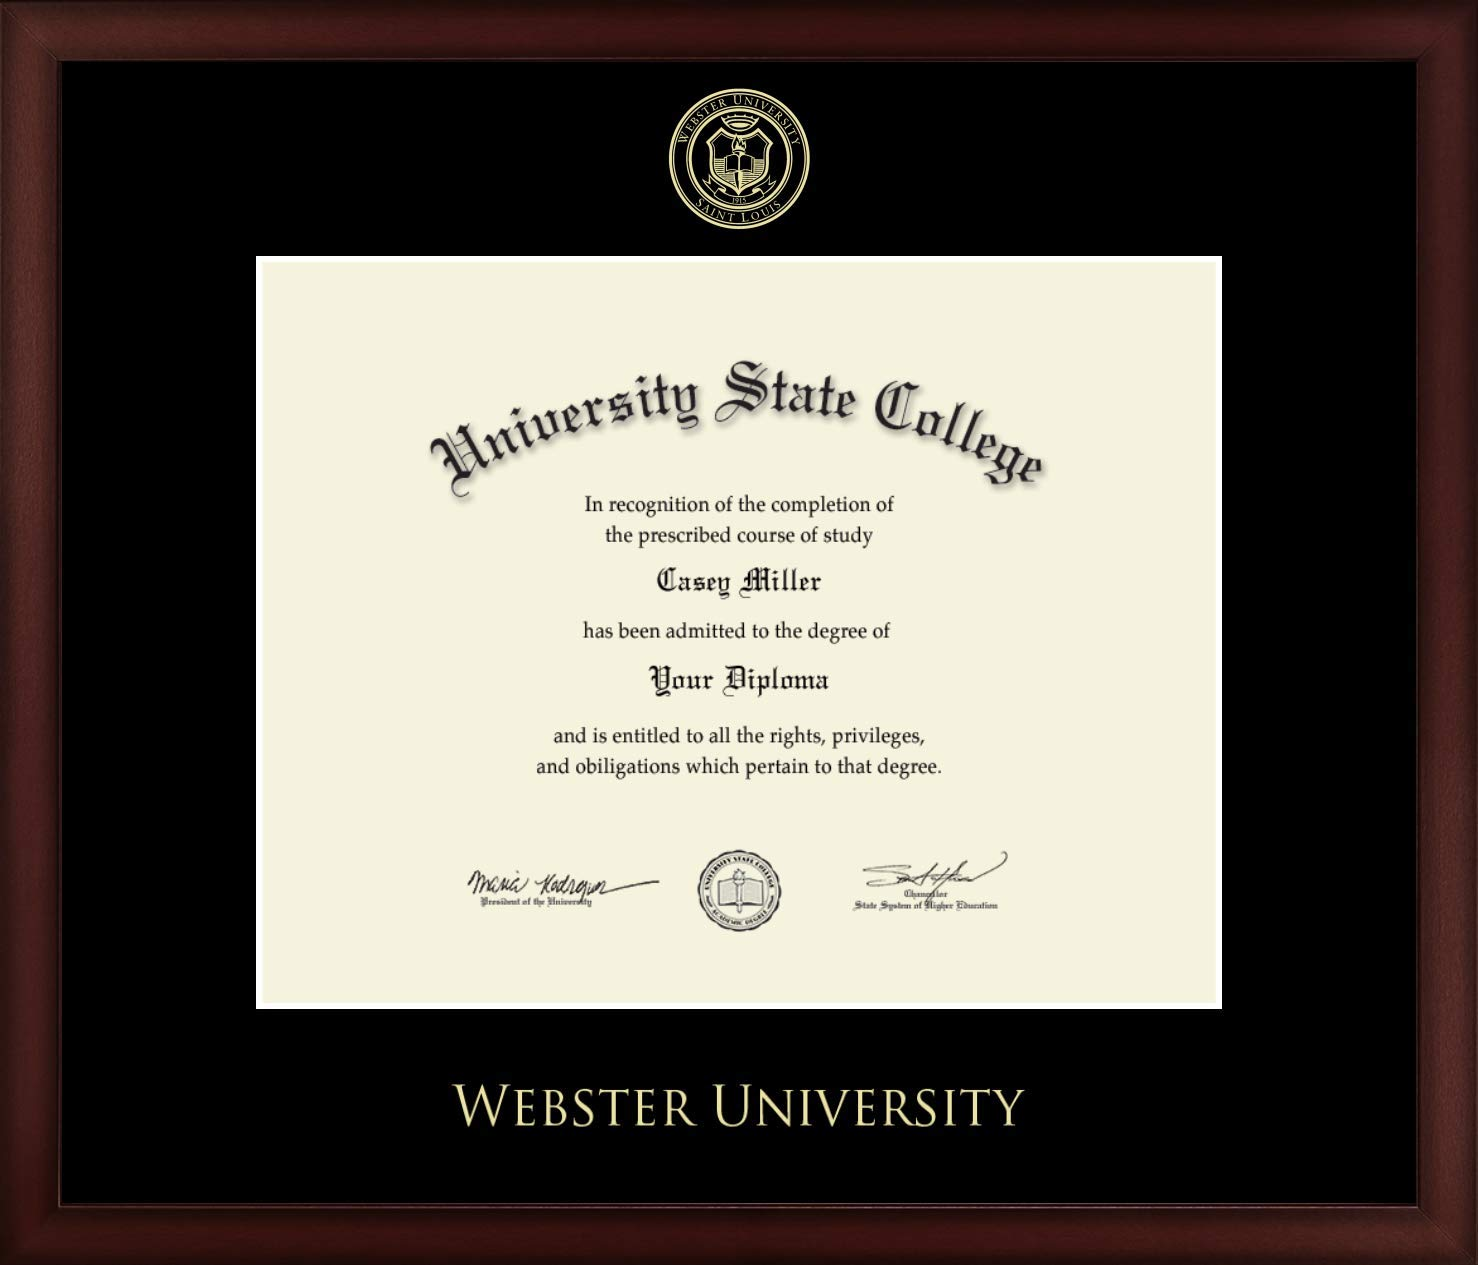 Webster University - Officially Licensed - Gold Embossed Diploma Frame - Diploma Size 13.75'' x 10.75''